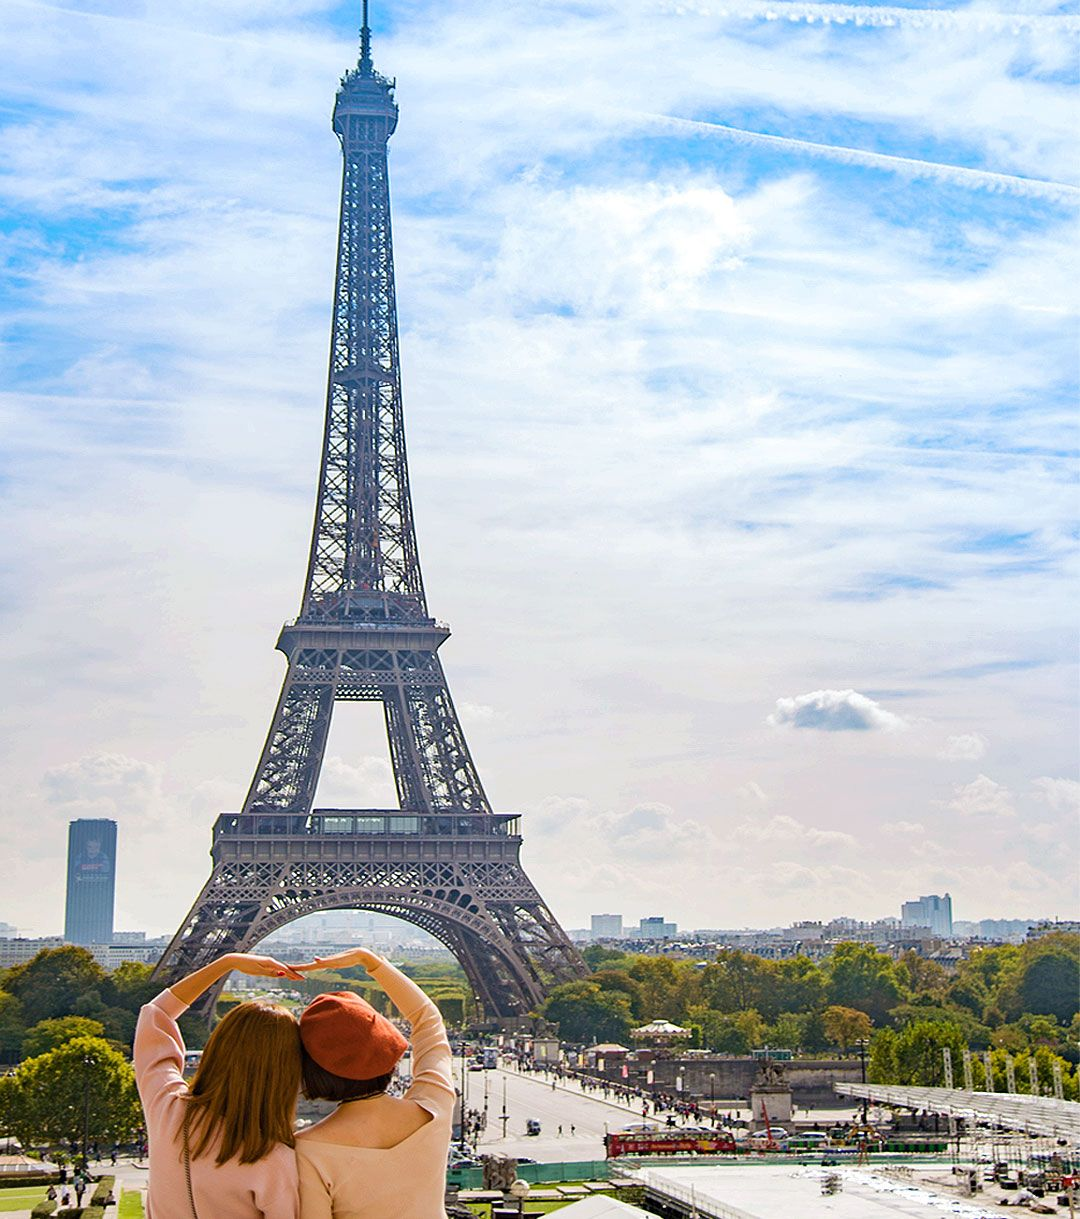 Eiffel Tower, Paris ♥ This iconic attraction is 1 bucket